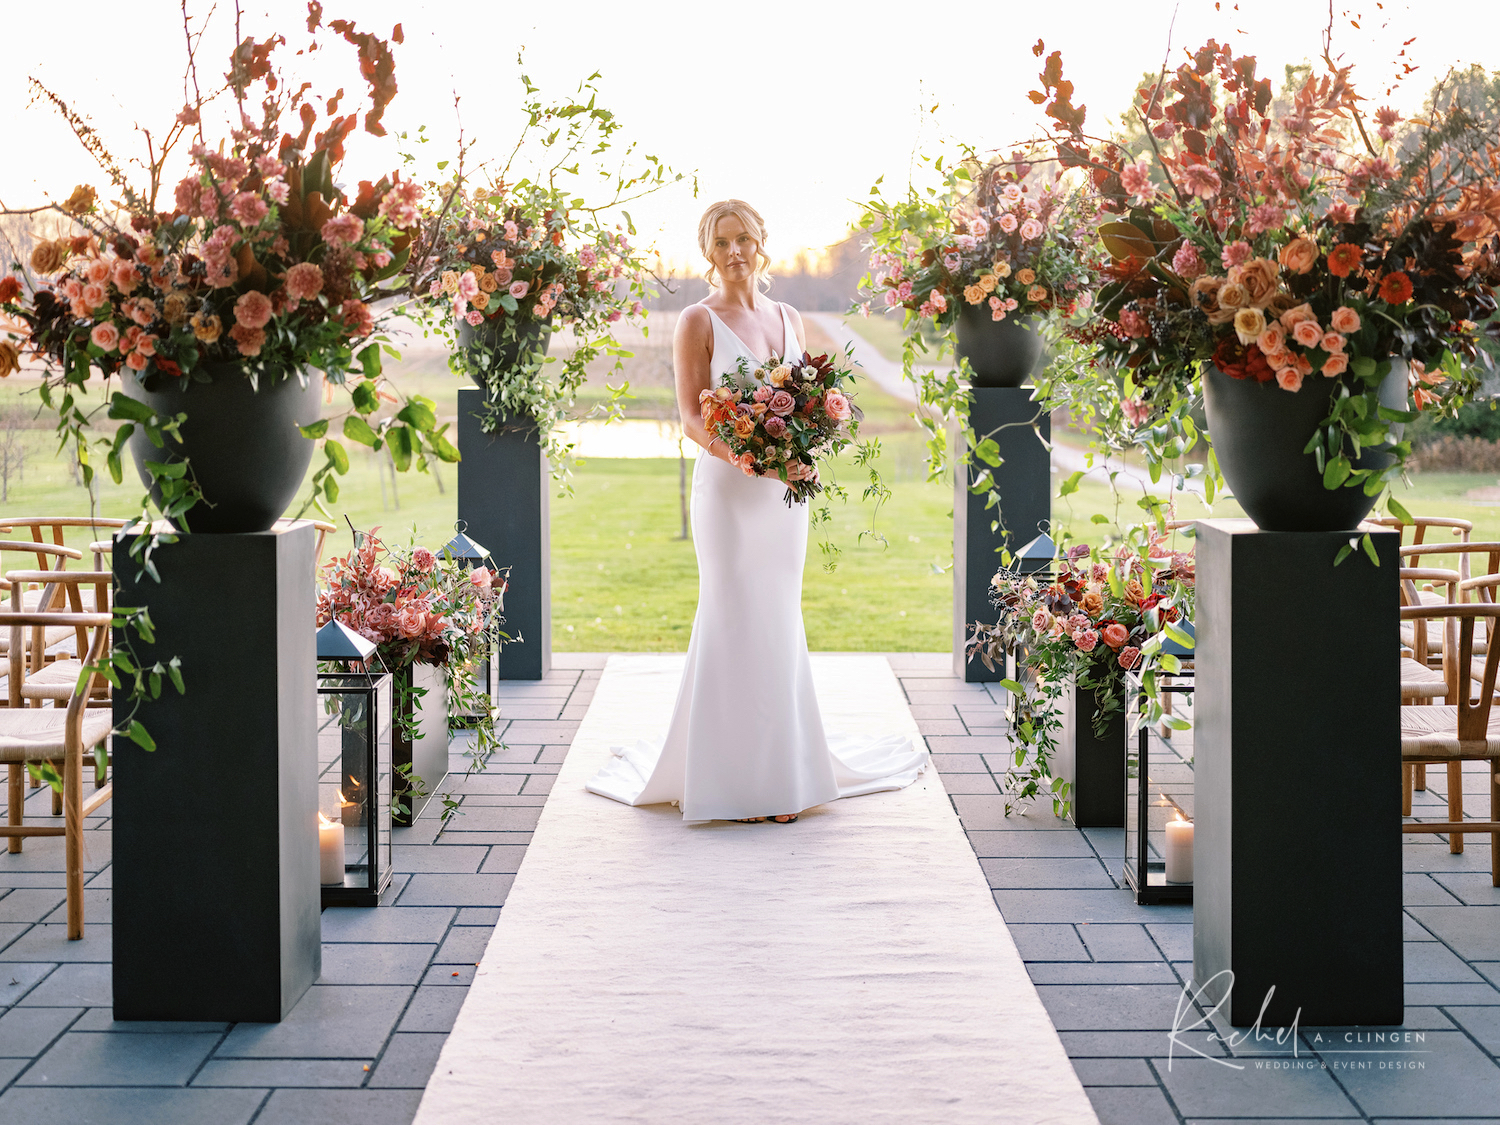 rachel a clingen wedding design flowers